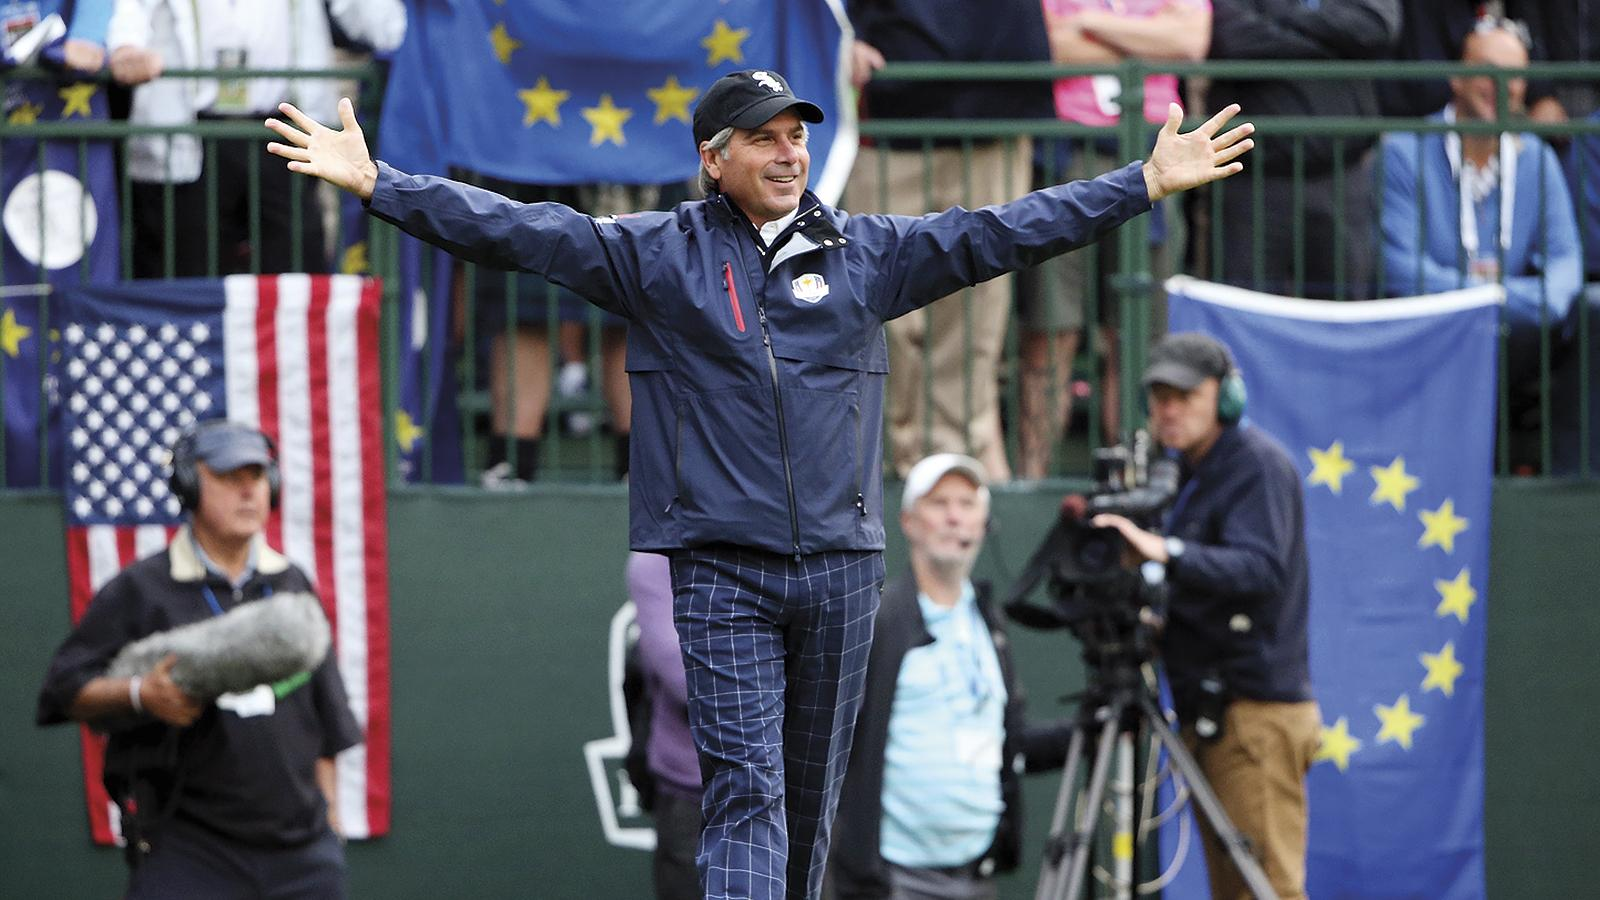 2012 Ryder Cup vice-captain Couples waves to the crowd